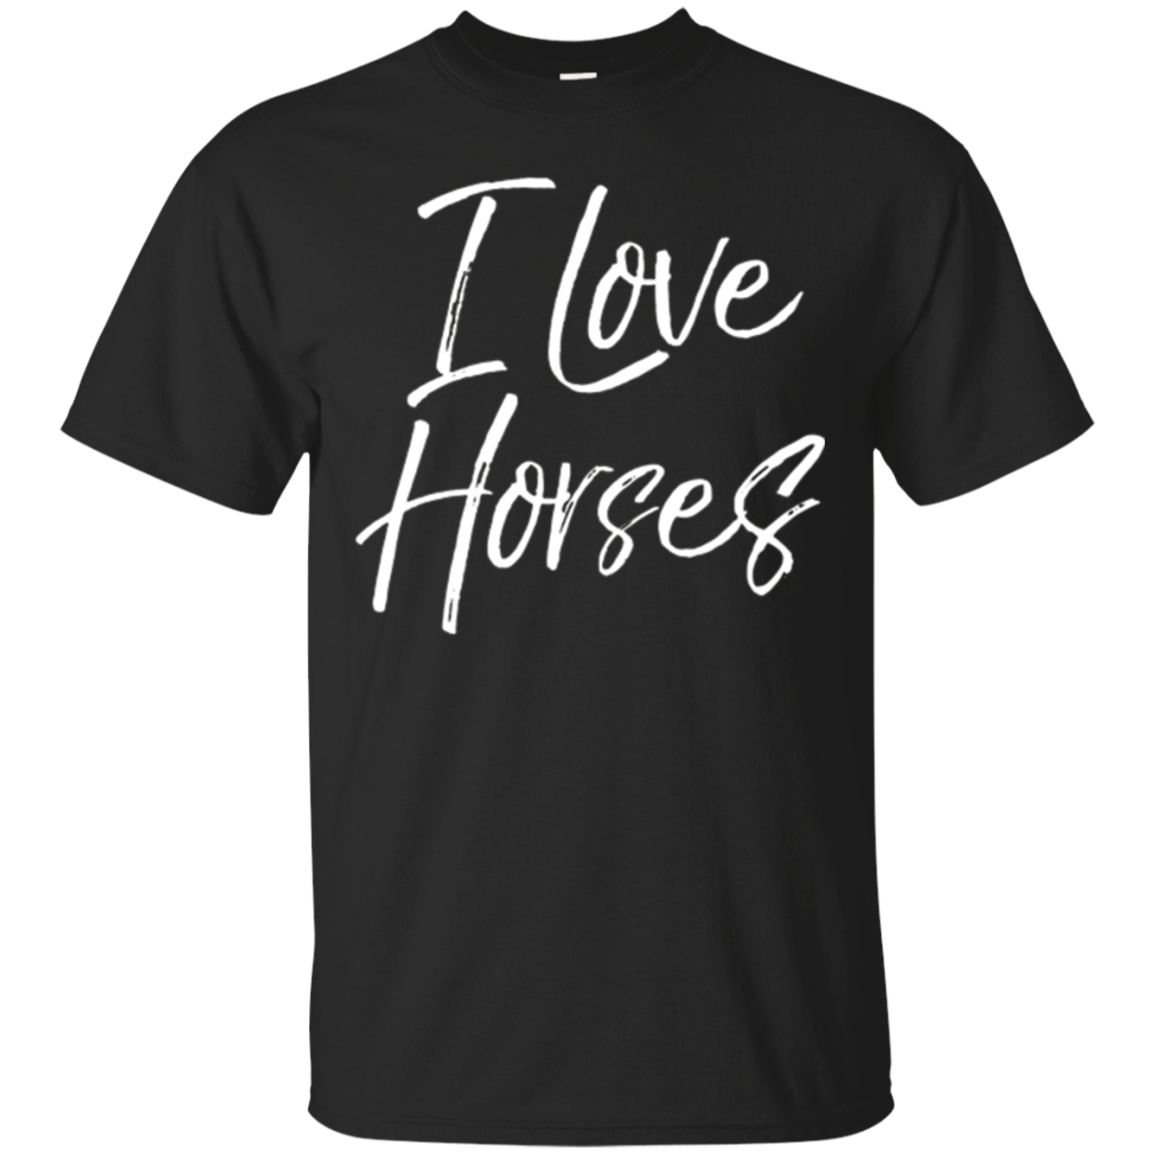 I Love Horses Shirt Fun Cute Equestrian Lover Tee